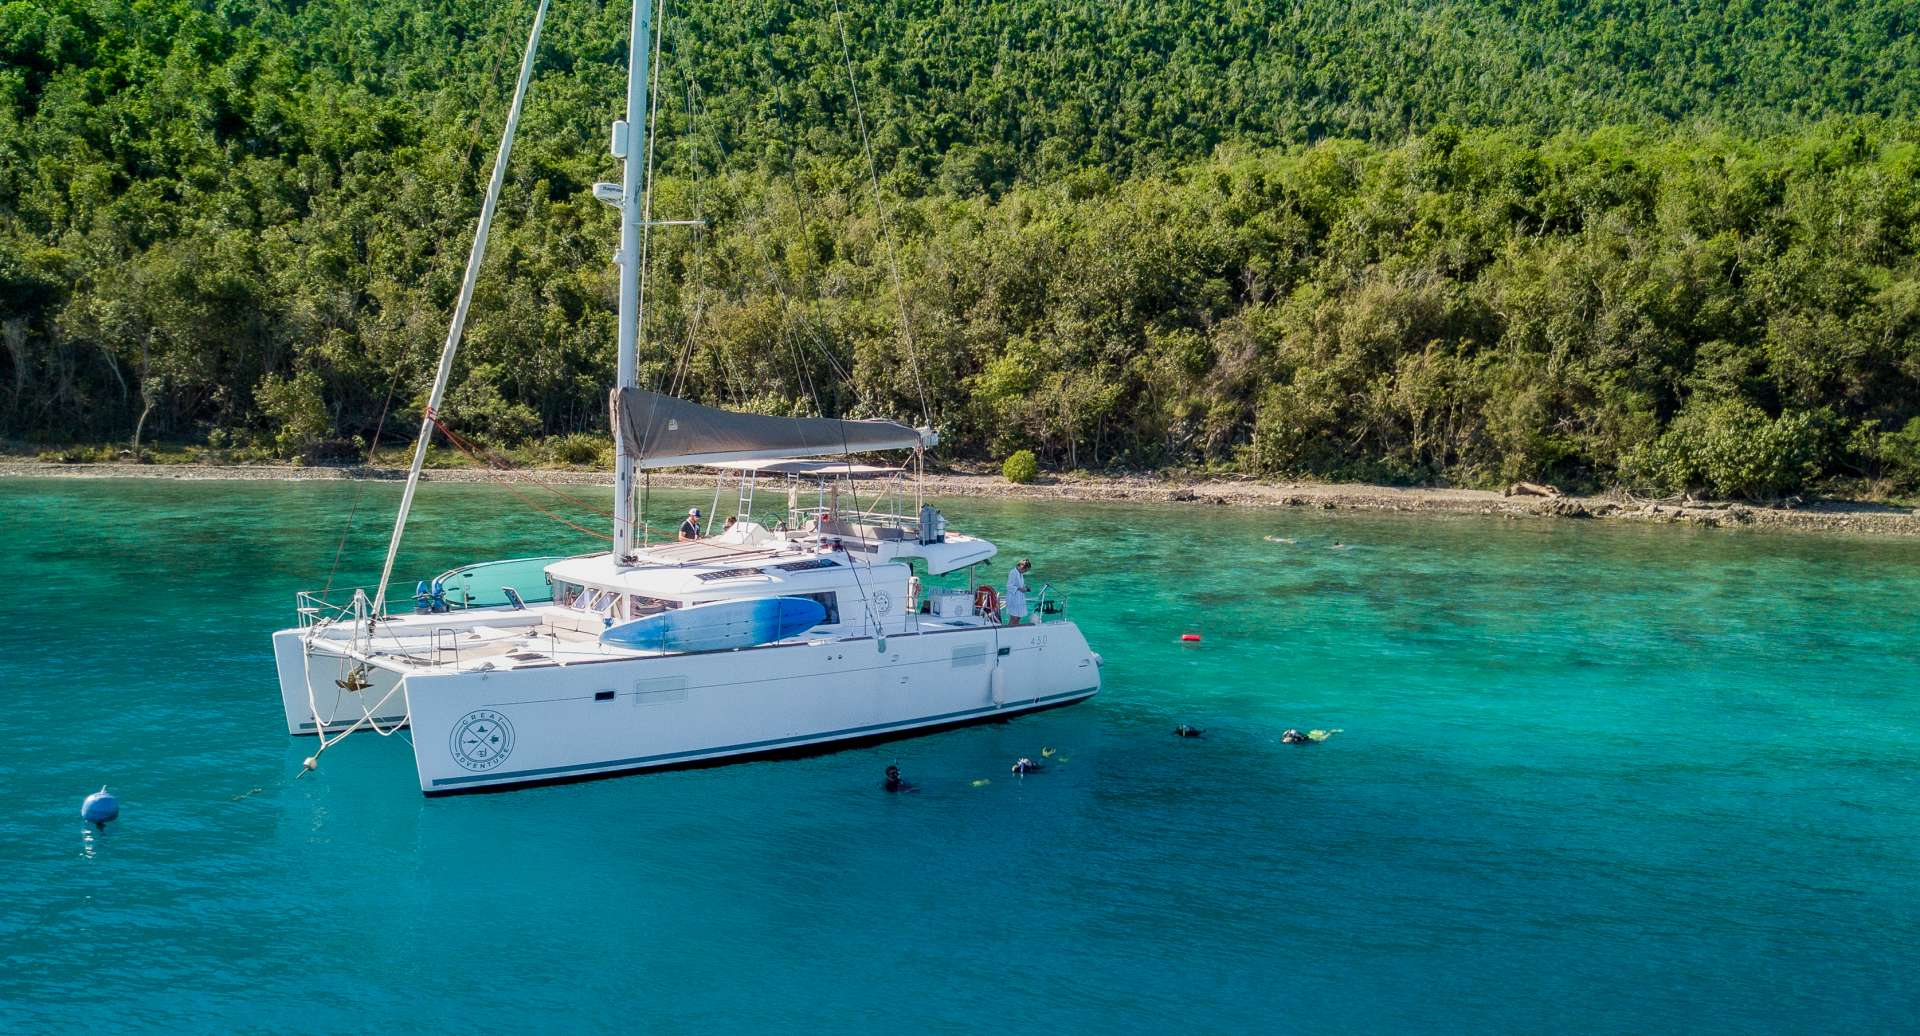 Charter with GREAT ADVENTURE on compassyachtcharters.com